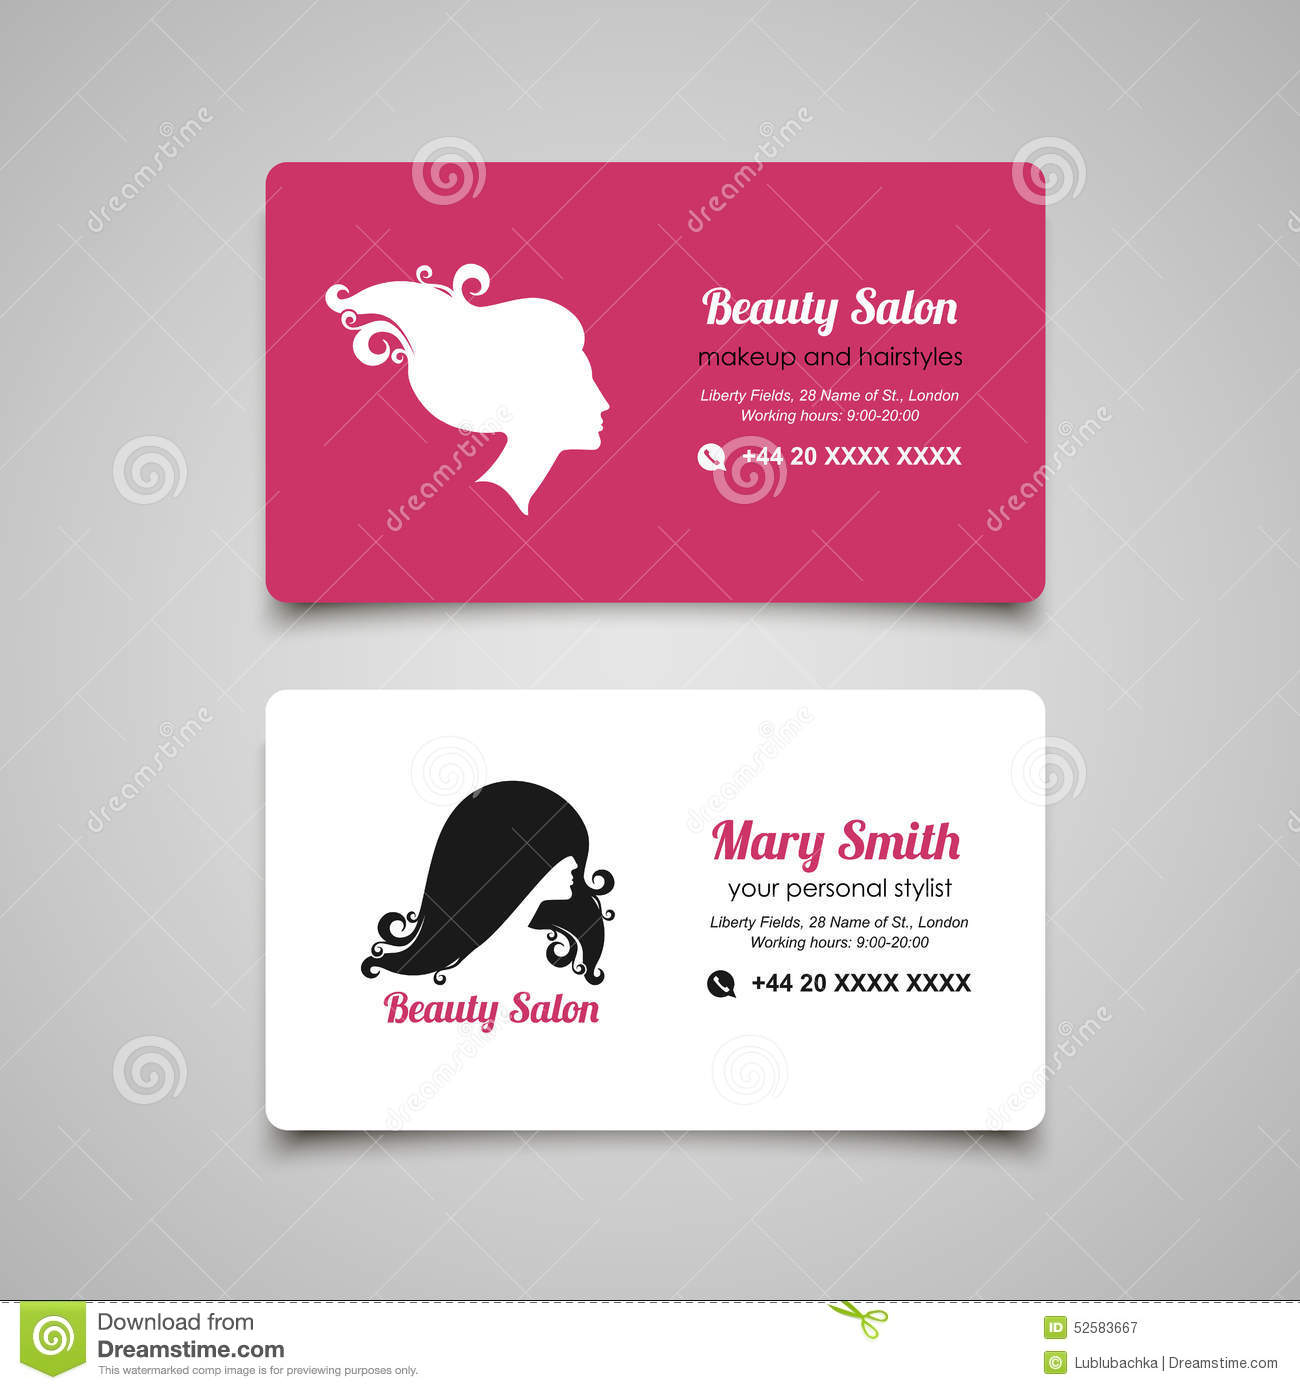 beauty salon business card design template with beautiful woman